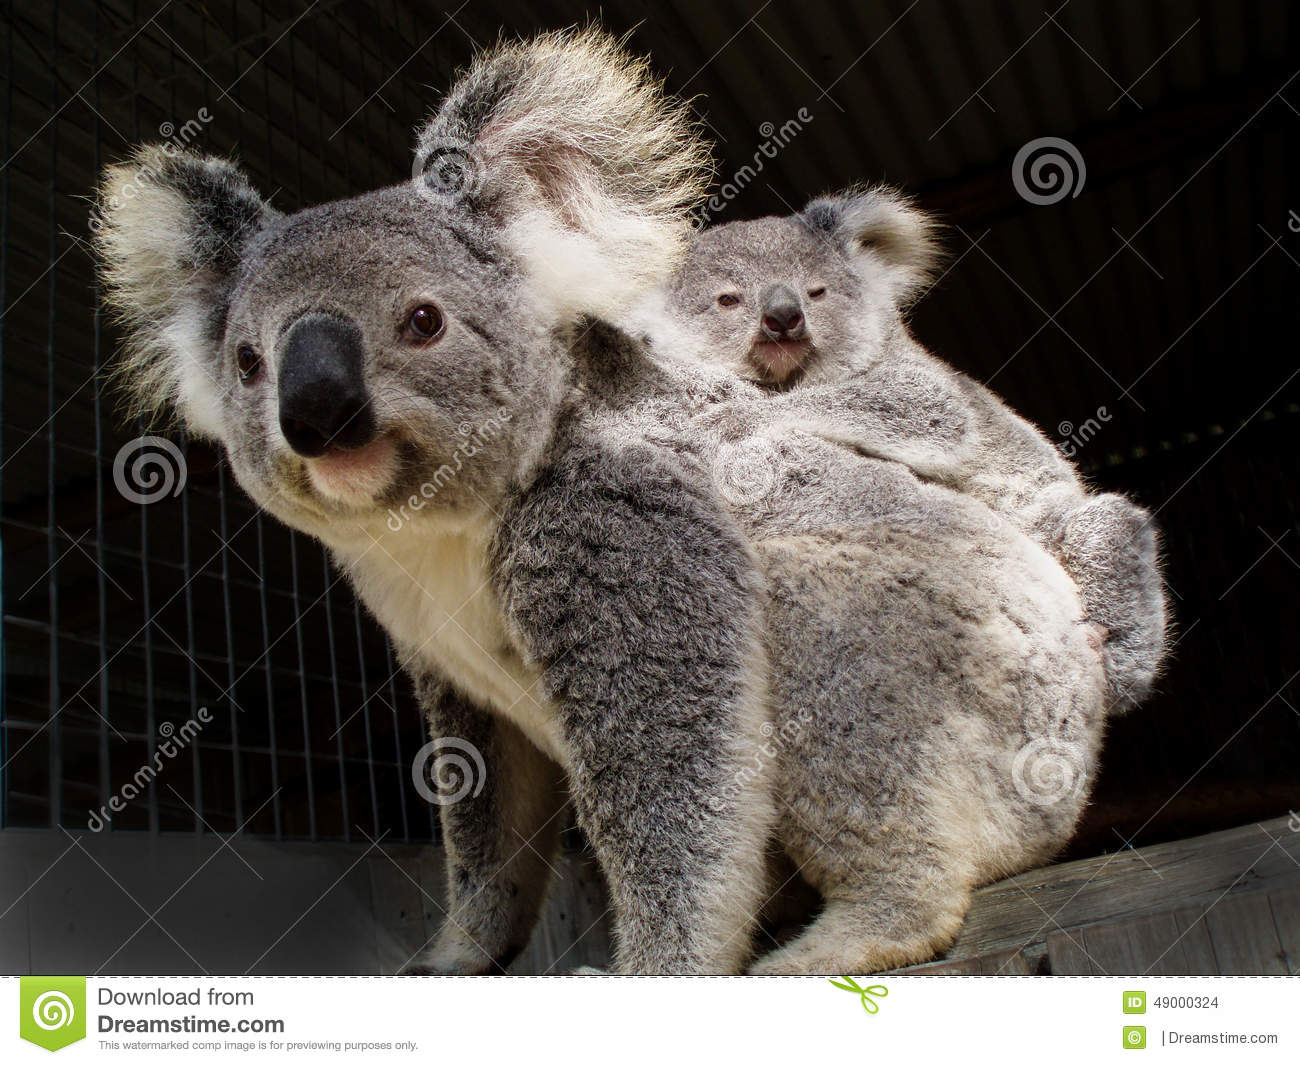 Koala bear and baby joey